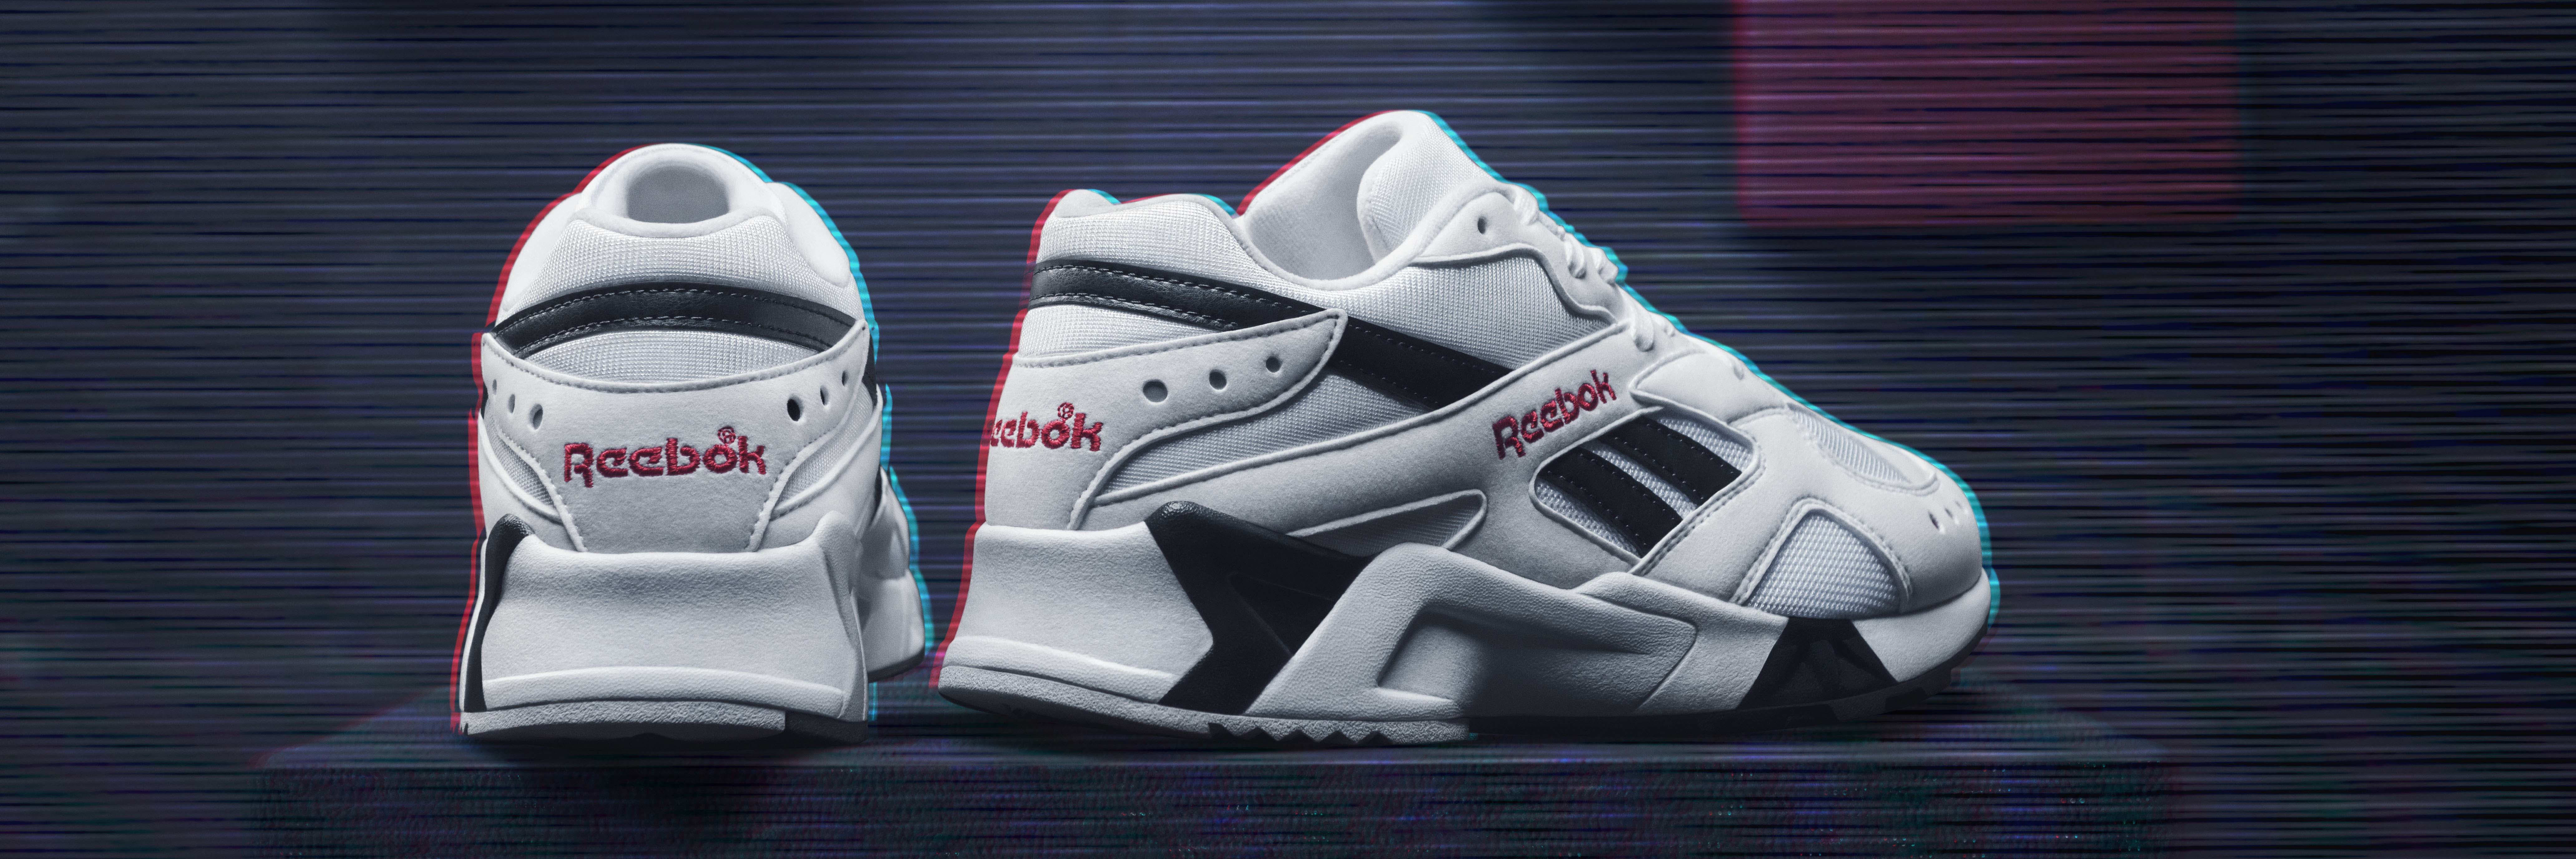 2eefcff95d4 How to Style These 90s Kicks